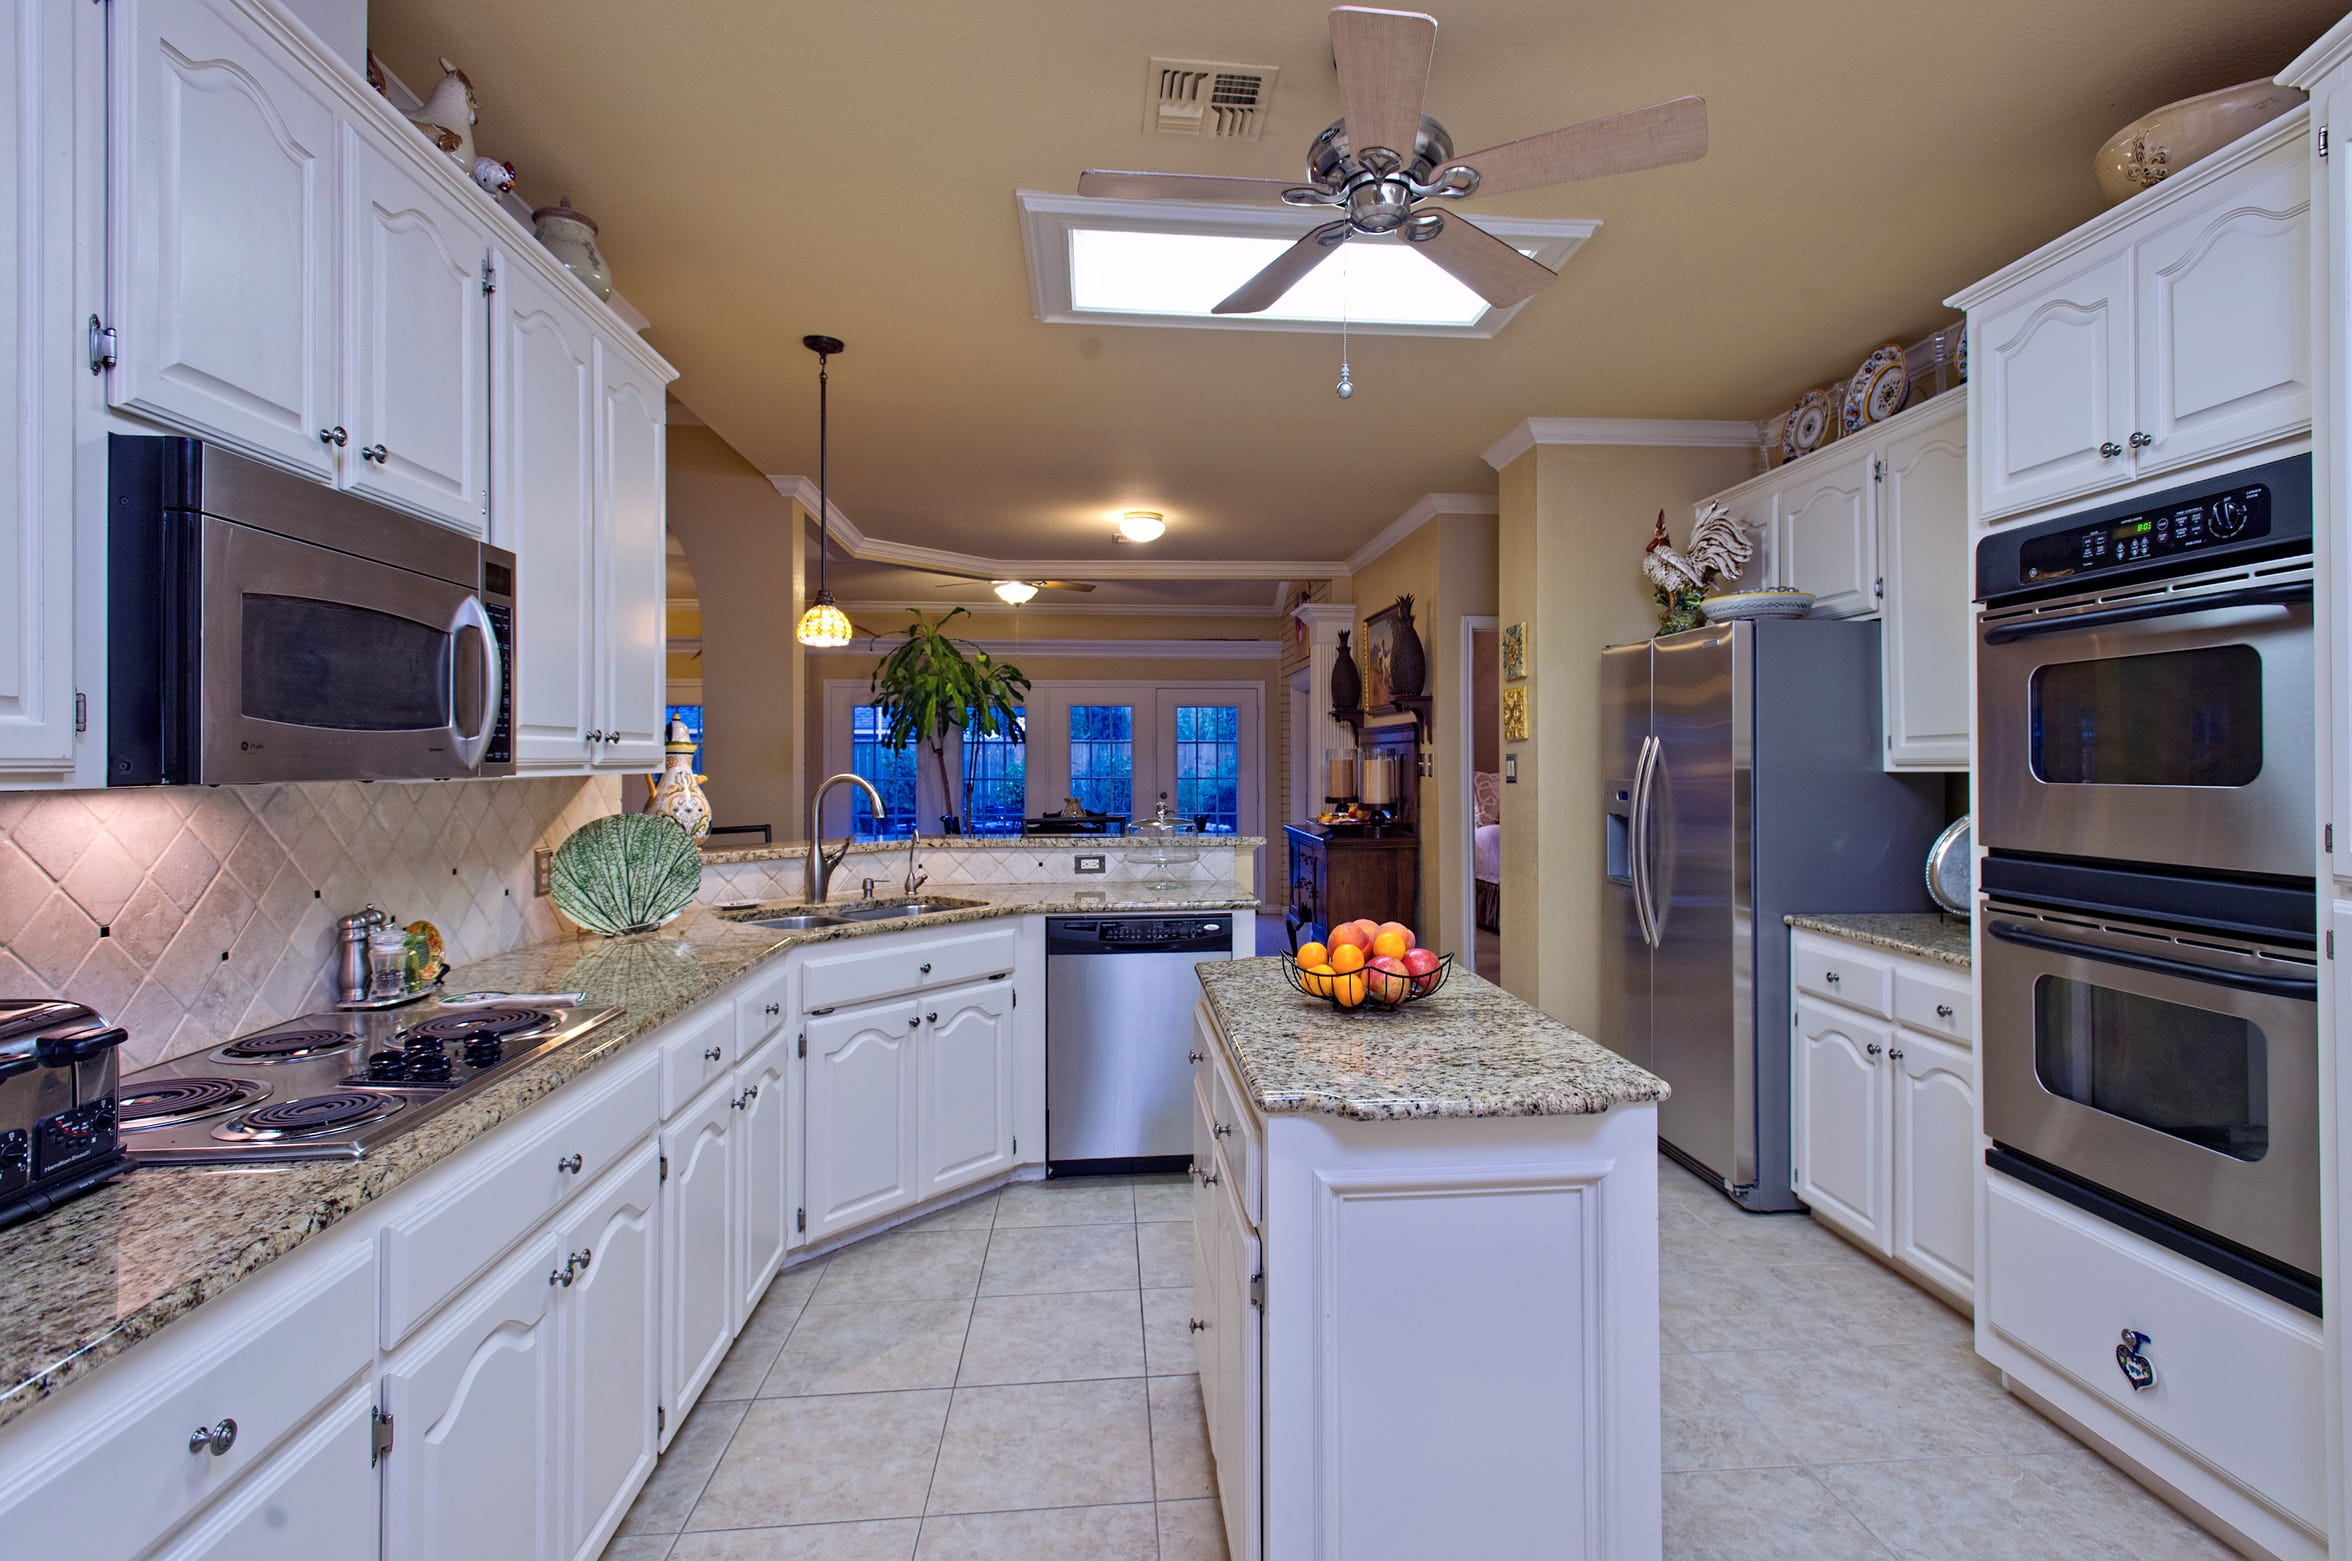 The spacious kitchen boasts granite counters and island and stainless steel appliances.